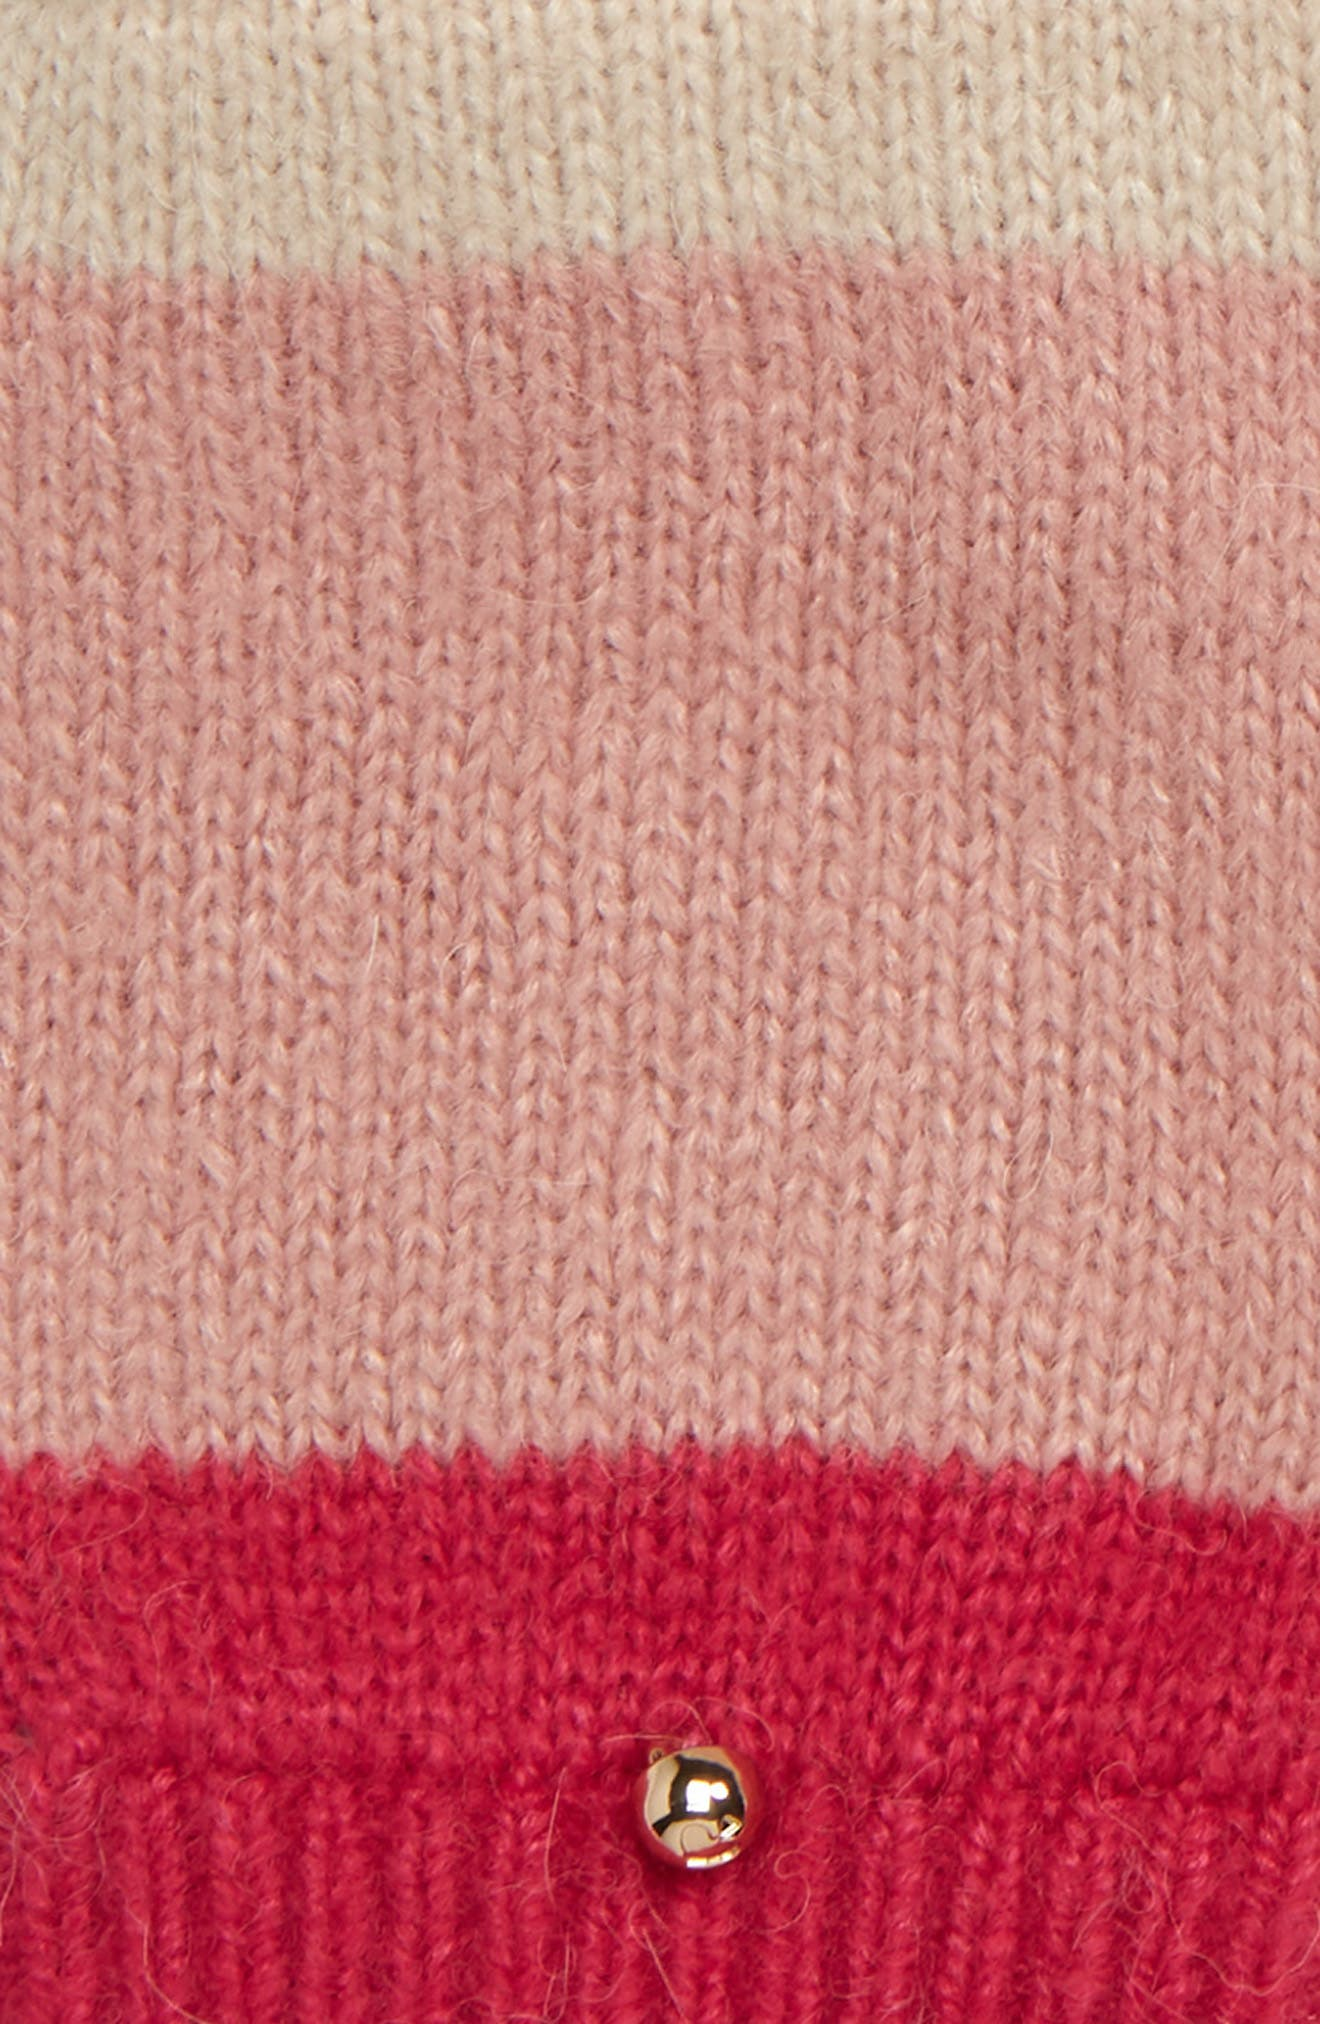 brushed knit colorblock convertible mittens,                             Alternate thumbnail 3, color,                             CREAM/ OATMEAL/ PEONY/ BEGONIA